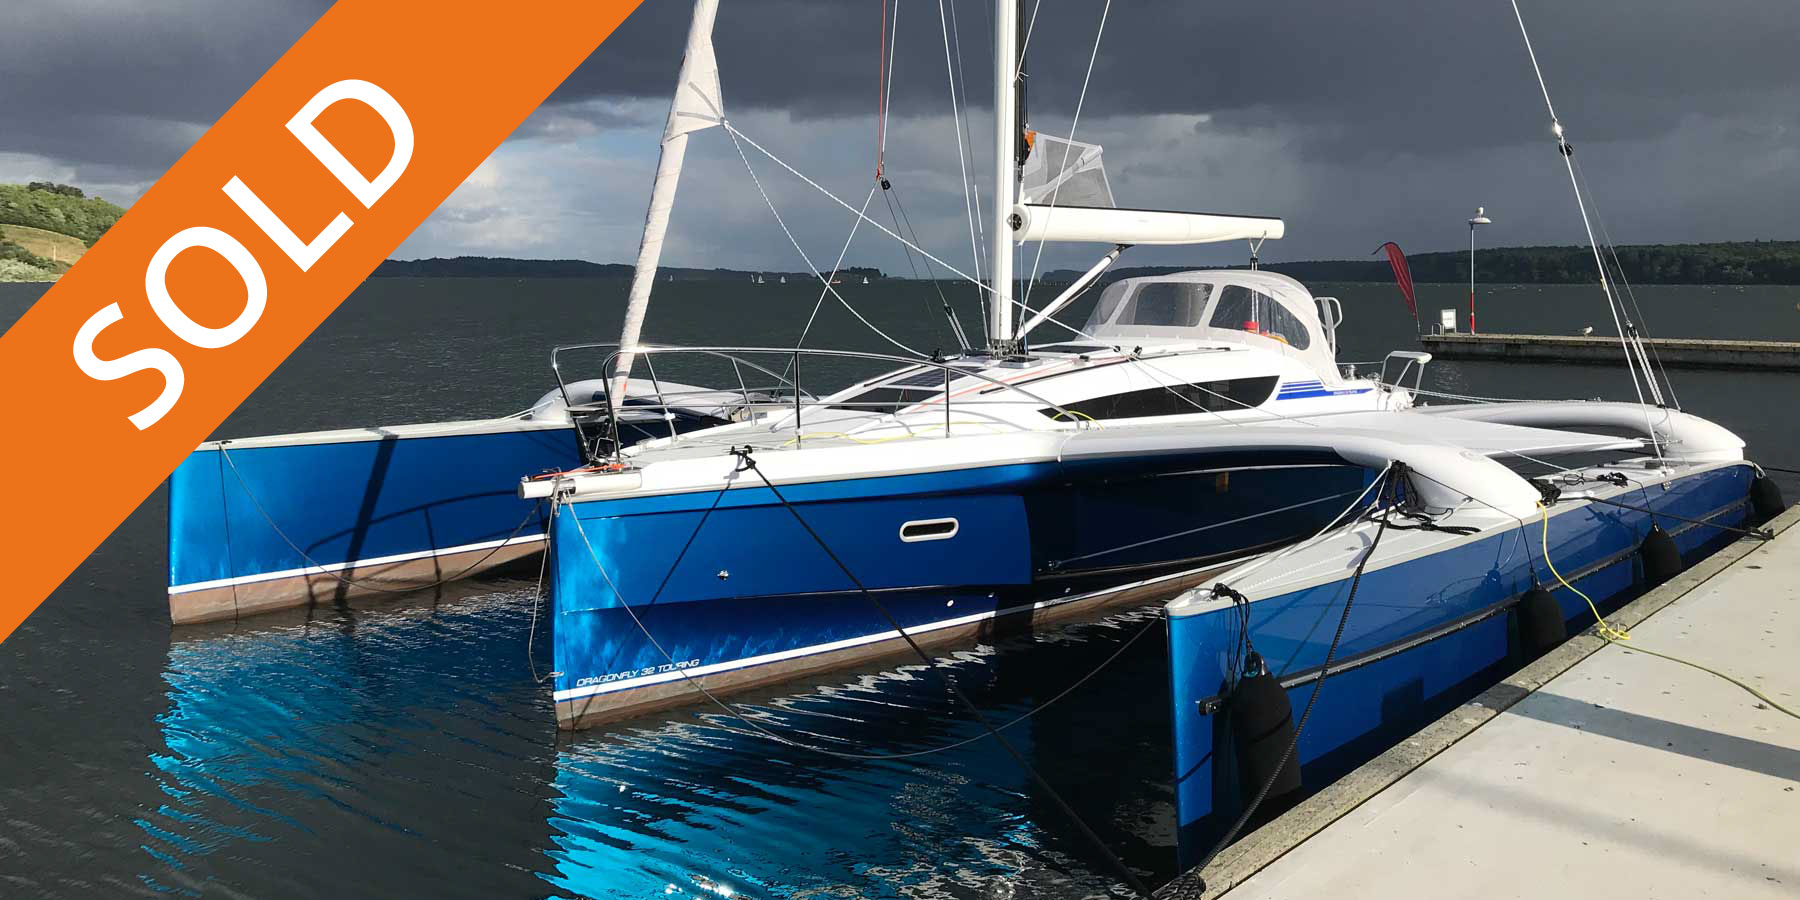 Dragonfly 32 Touring, now sold